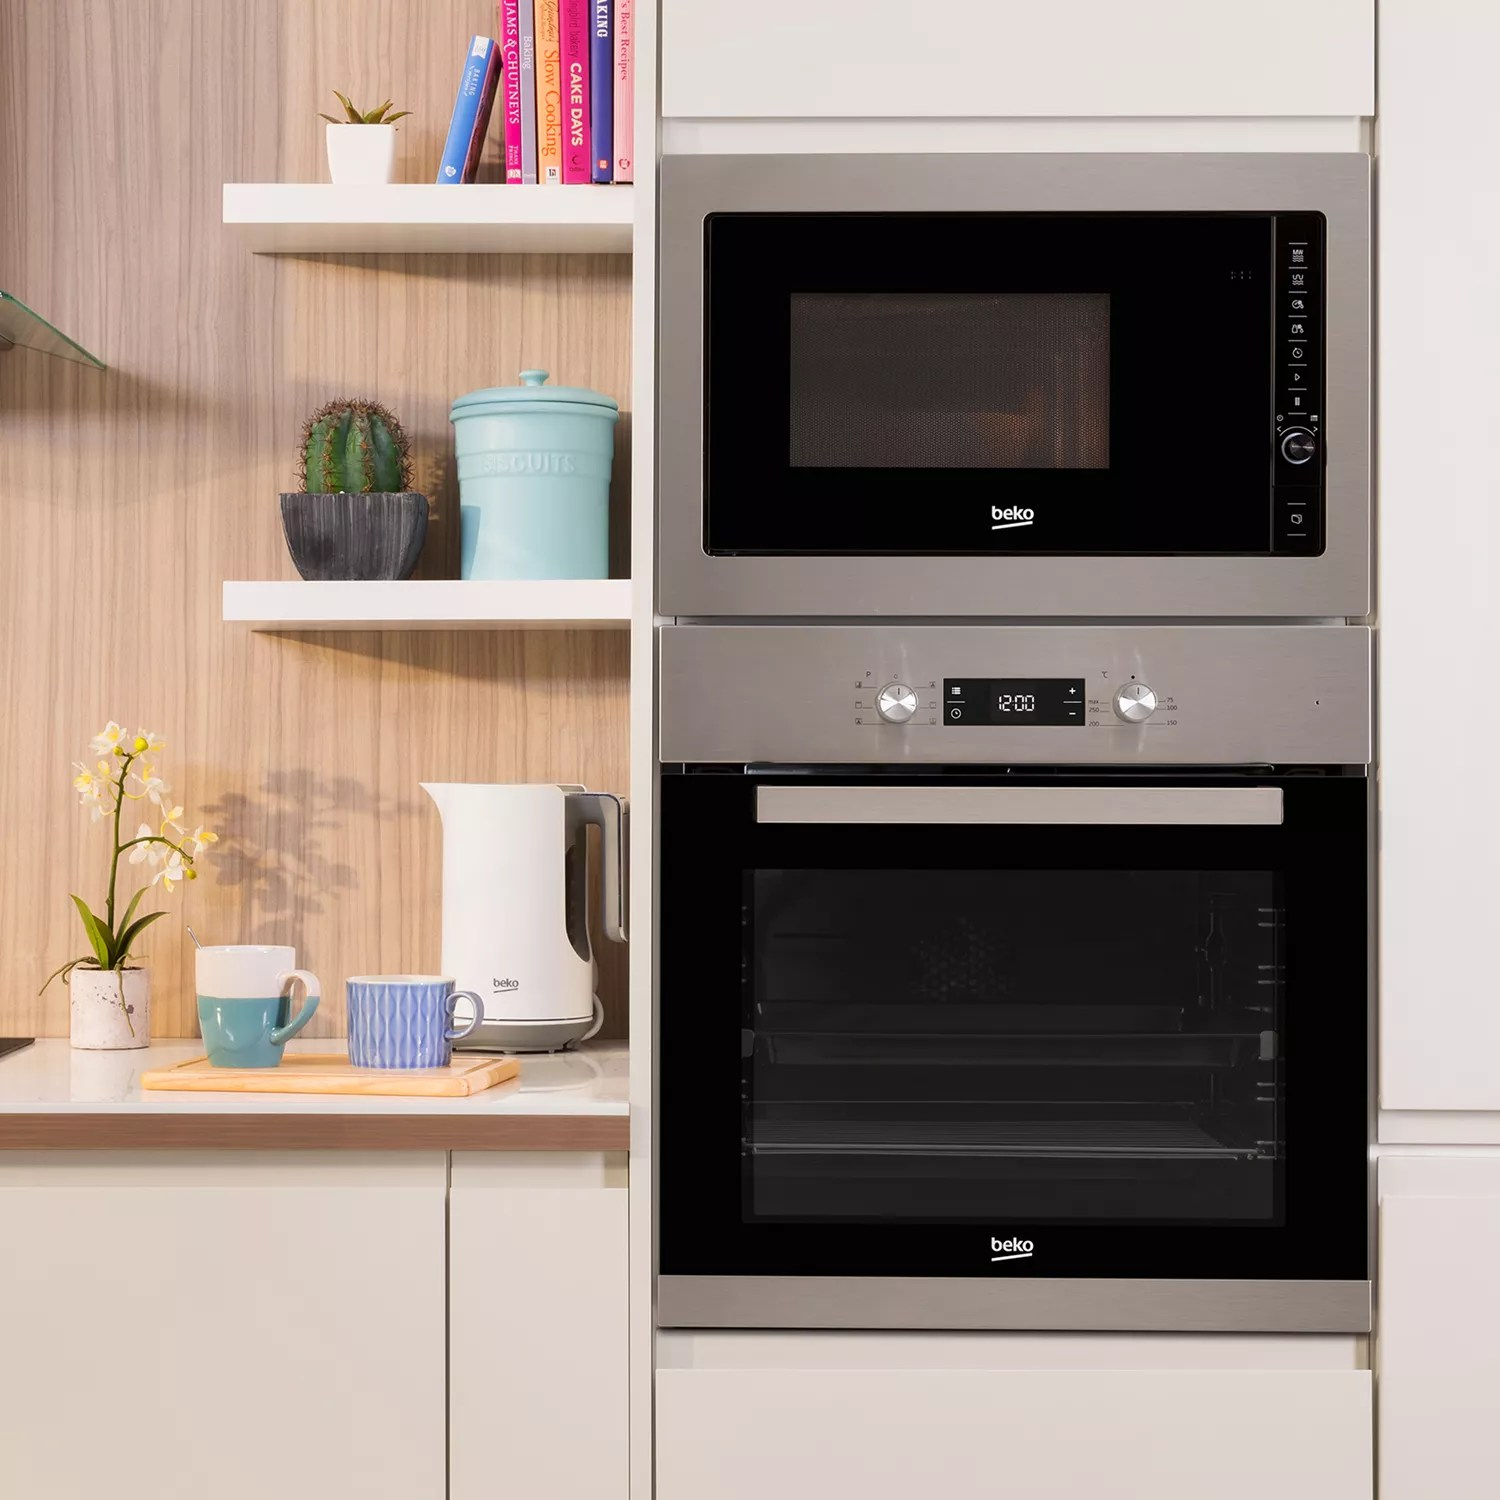 Integrated Microwave Beko Mgb25332bg Integrated Microwave With Grill Stainless